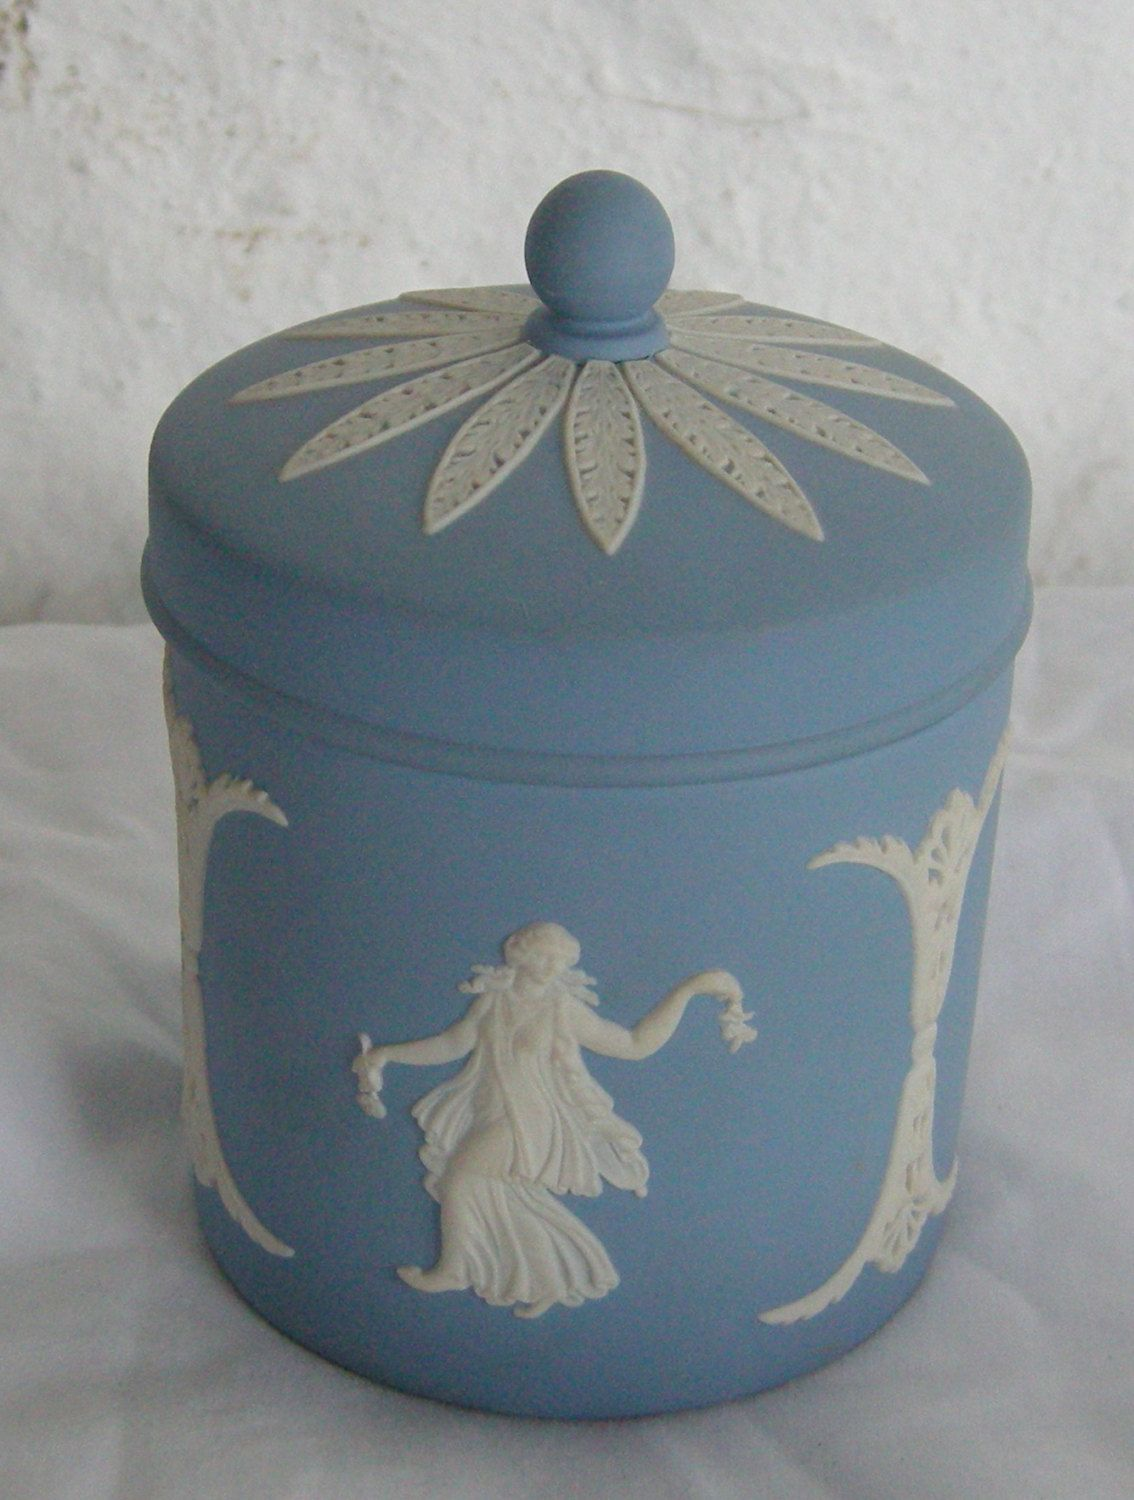 Wedgwood Blue Jasperware Tea Caddy by buyadalia on Etsy